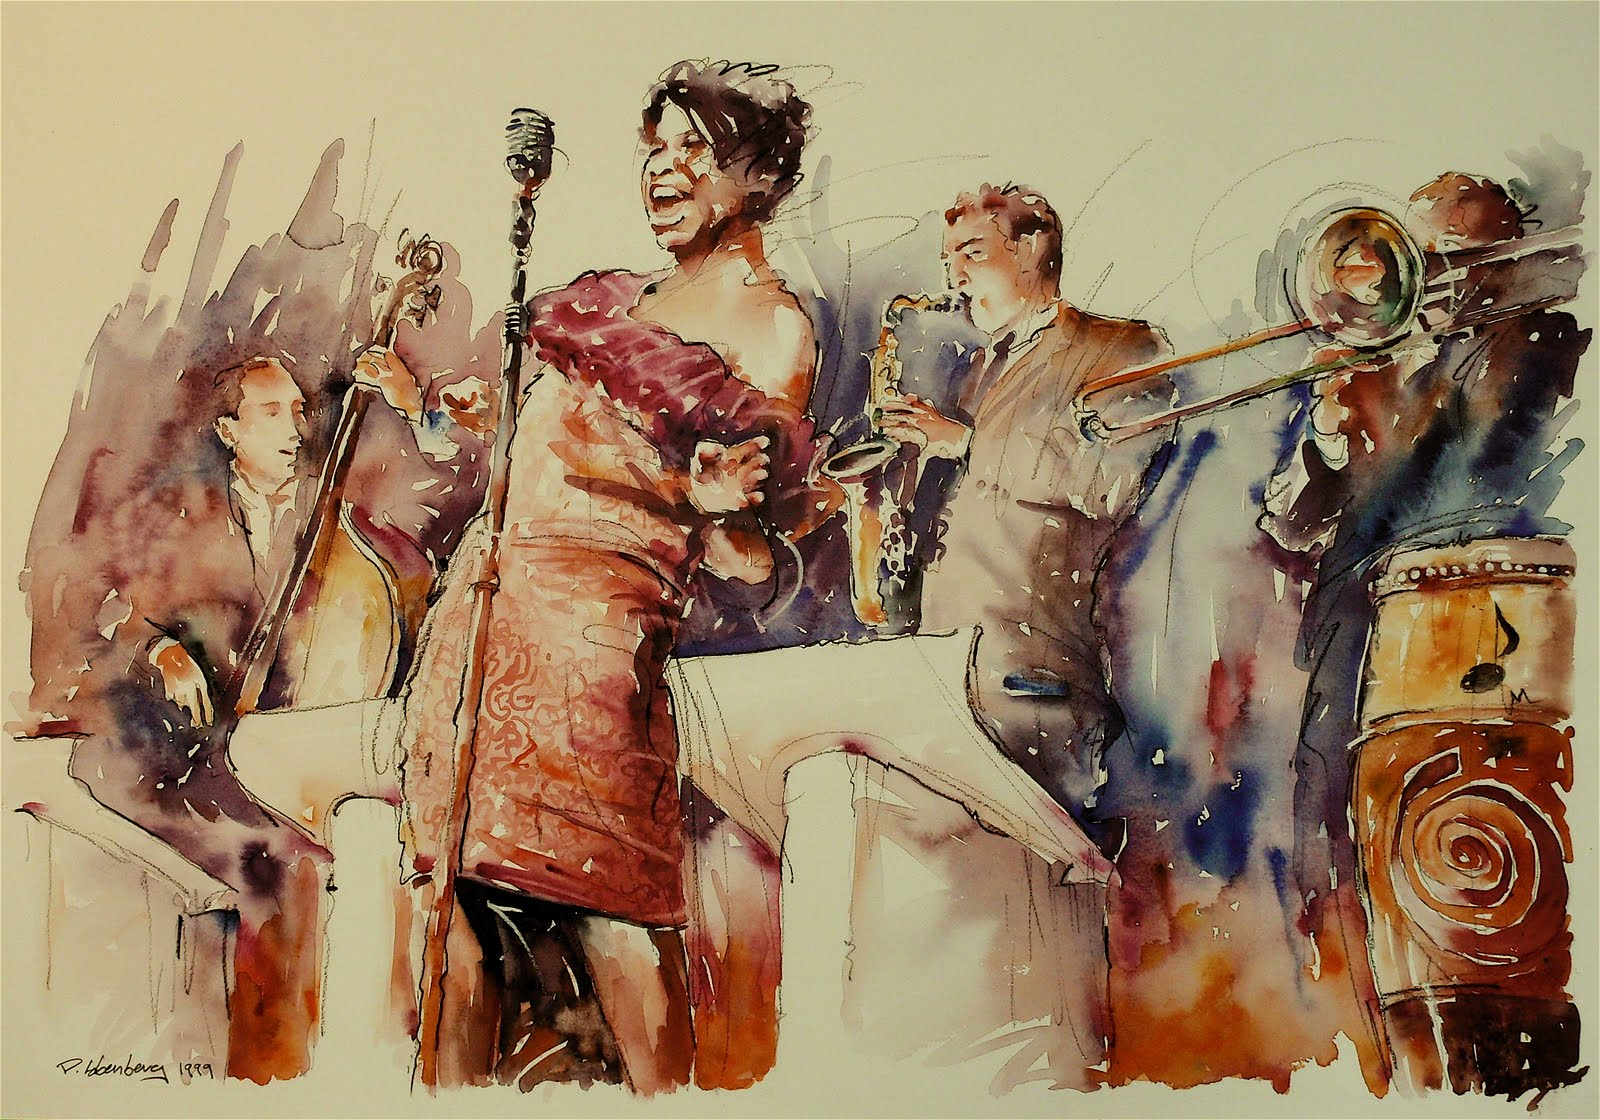 Watercolor artists names - Herewith Are The Names Of The Four Great 20th Century Jazz Artists That I Watercolor Awhile Back And Showed In My Previous Post They Are Ella Fitzgerald